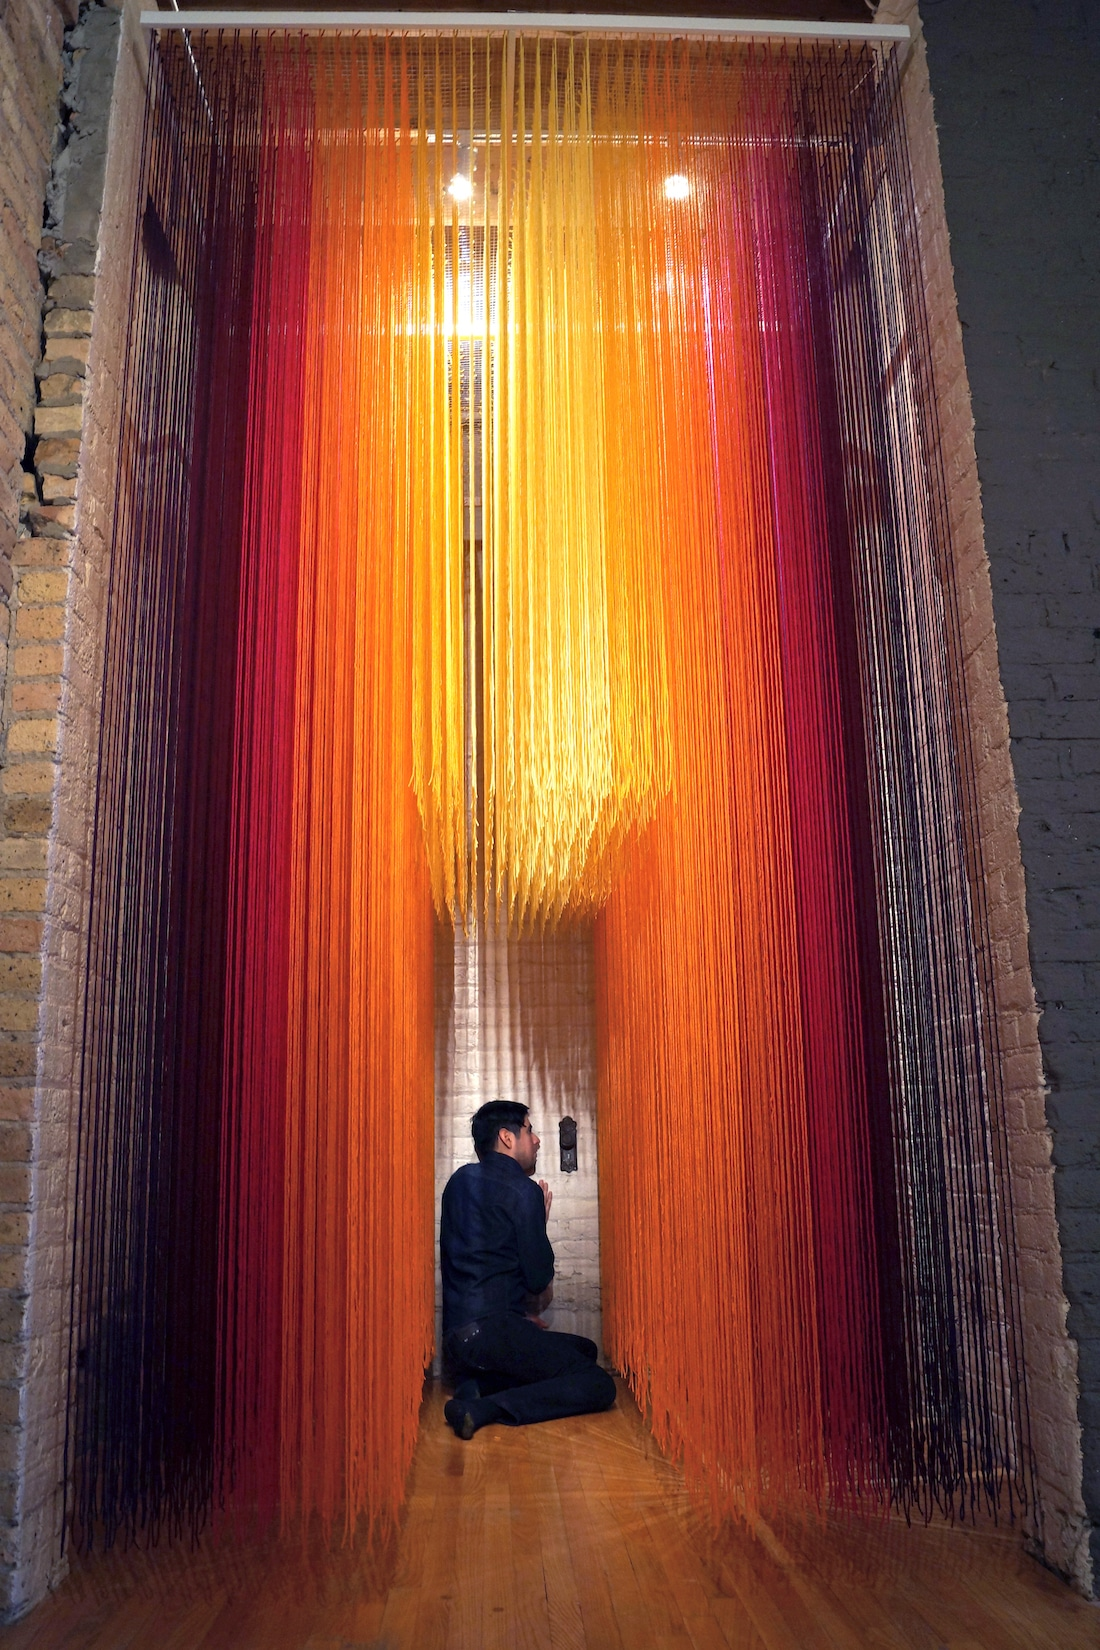 HOTTEA Yarn Installations Yarn Art